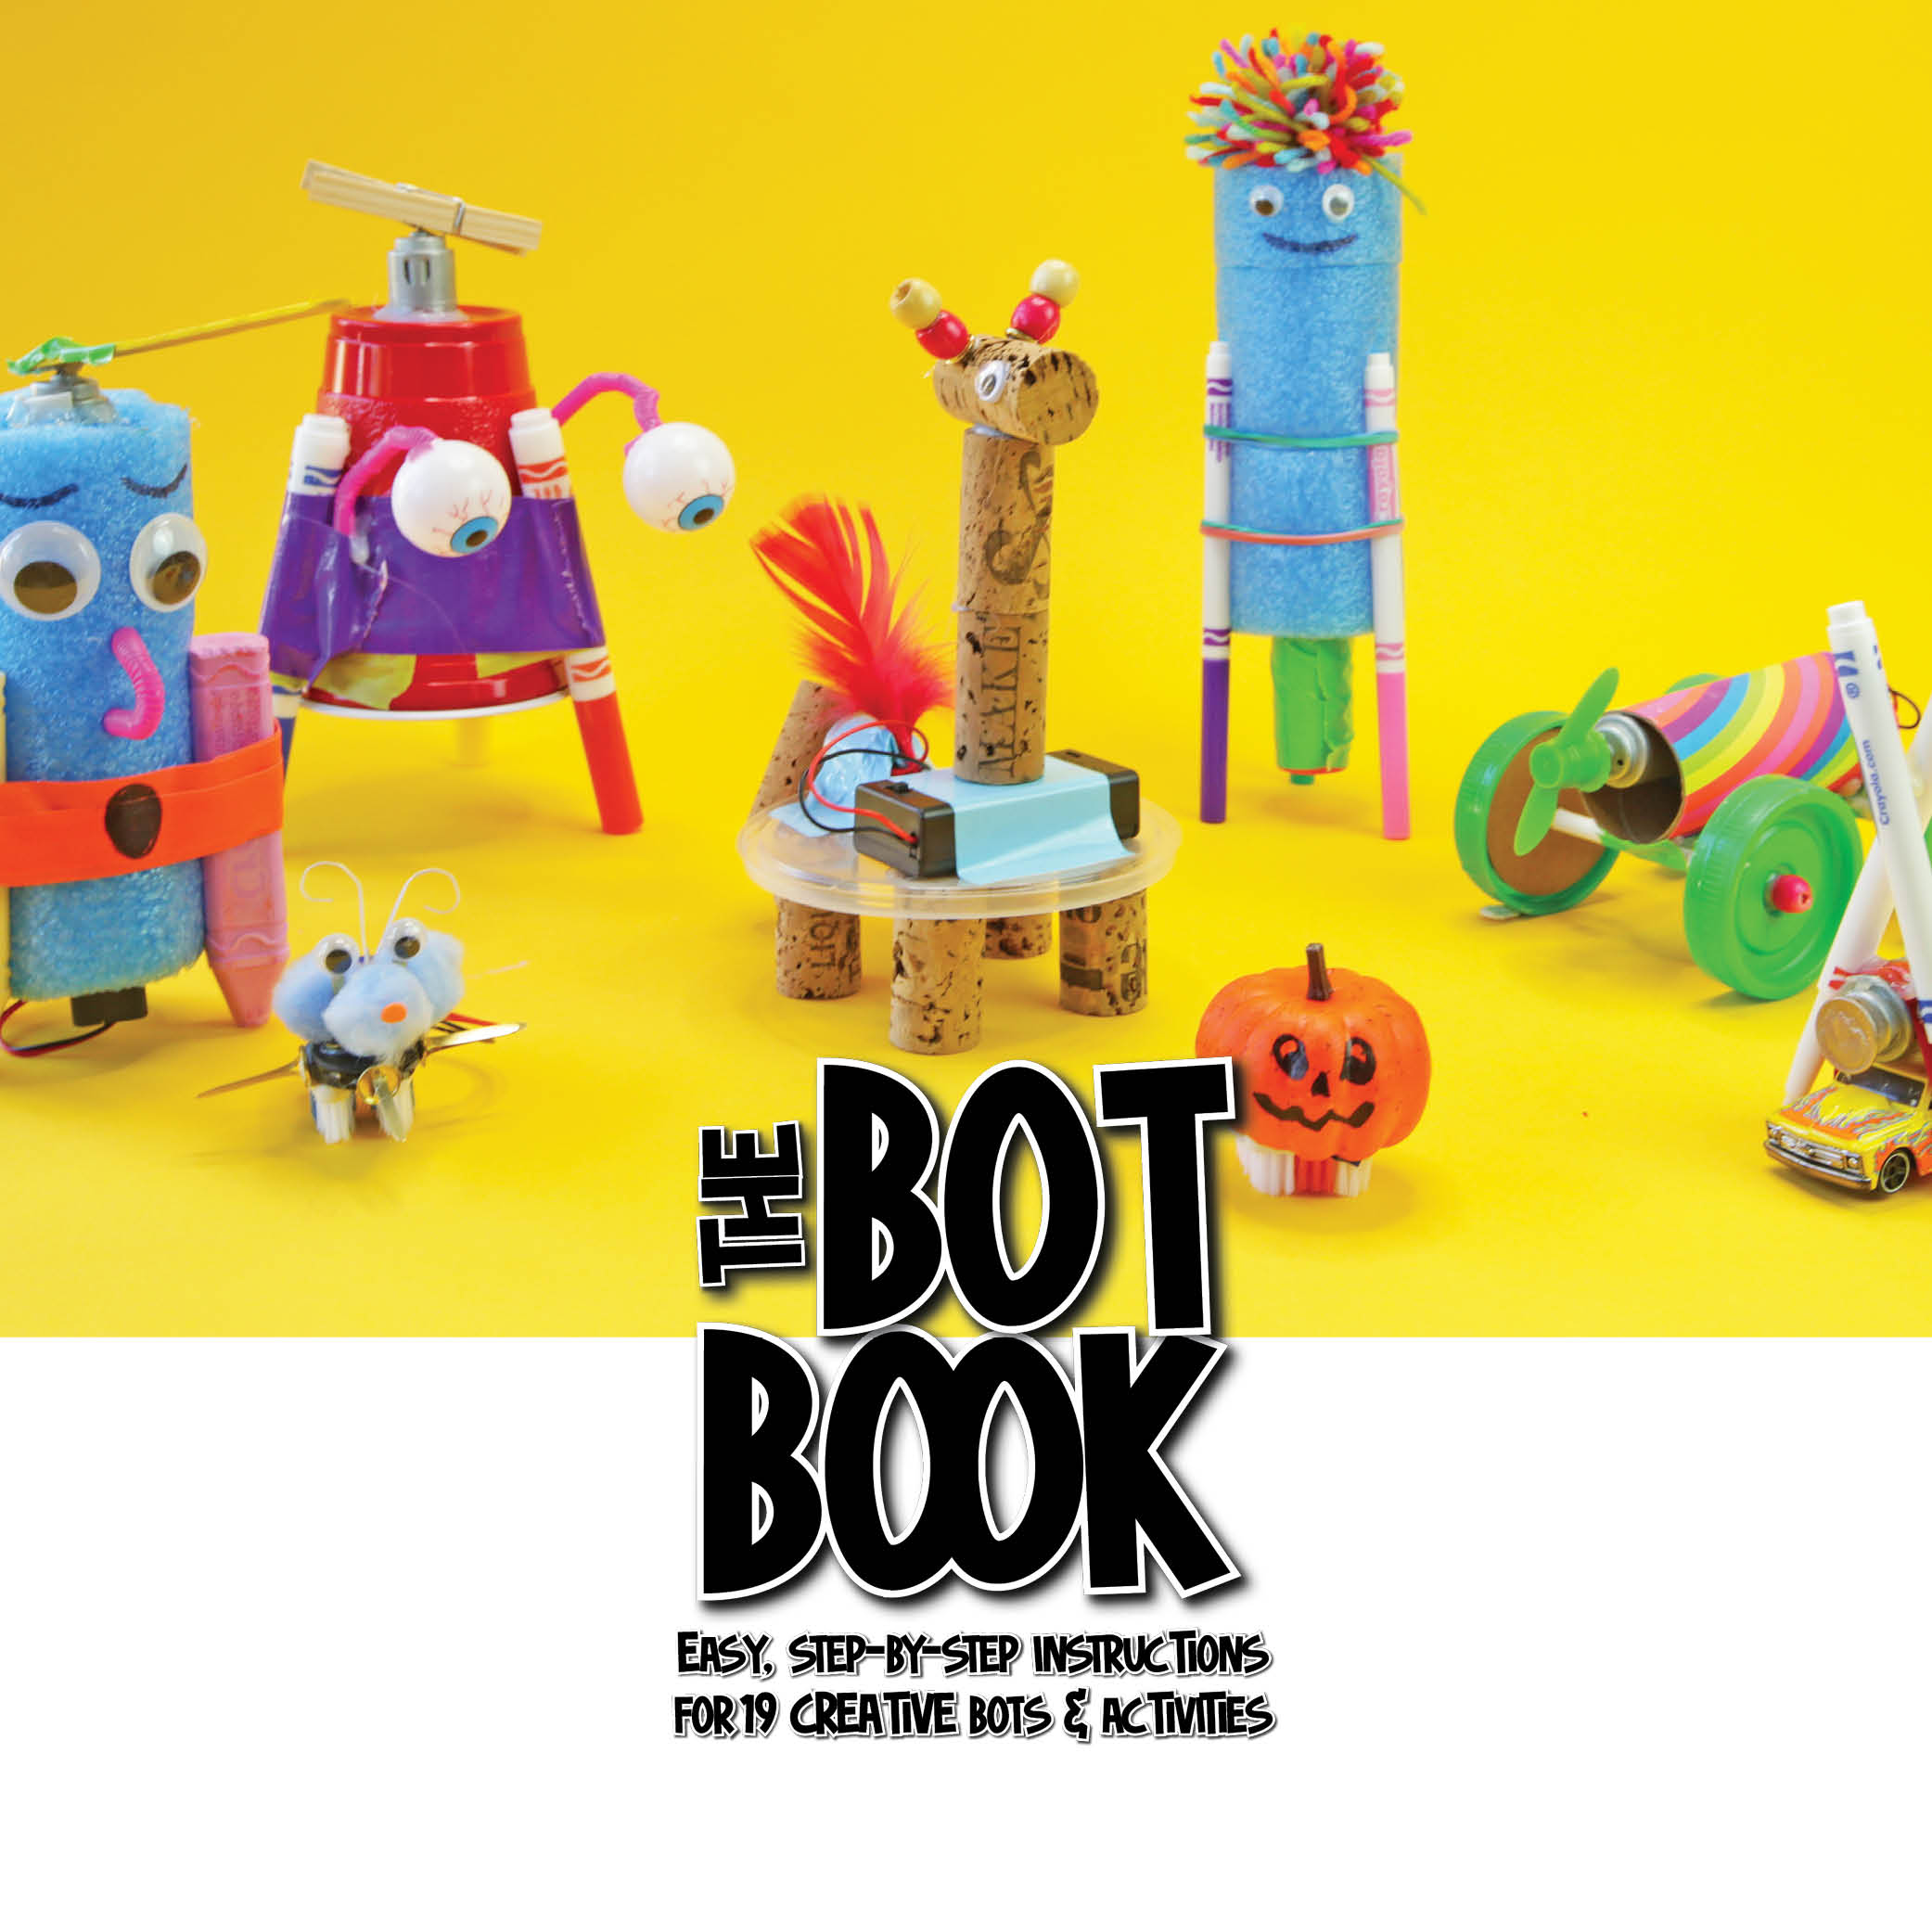 bot book header square